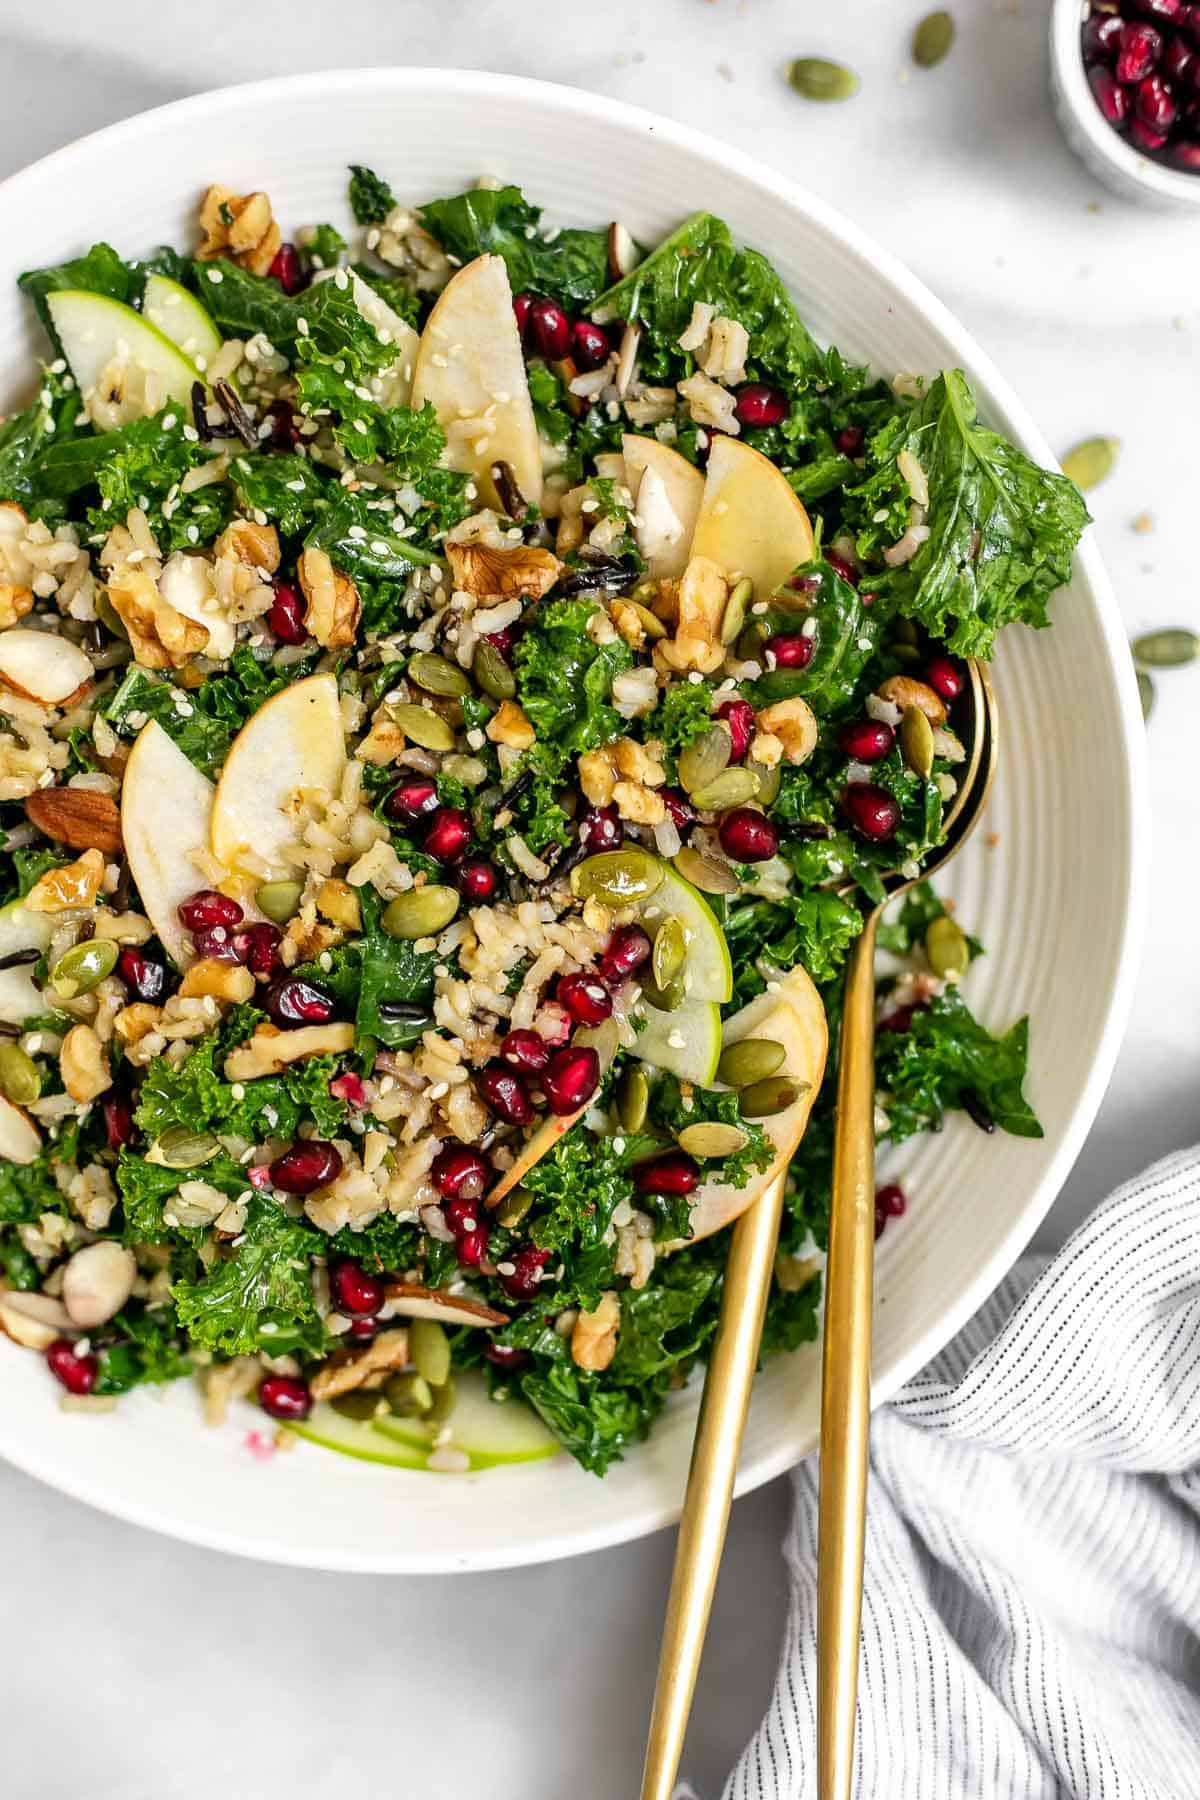 Up close image of the kale apple salad in a white bowl.